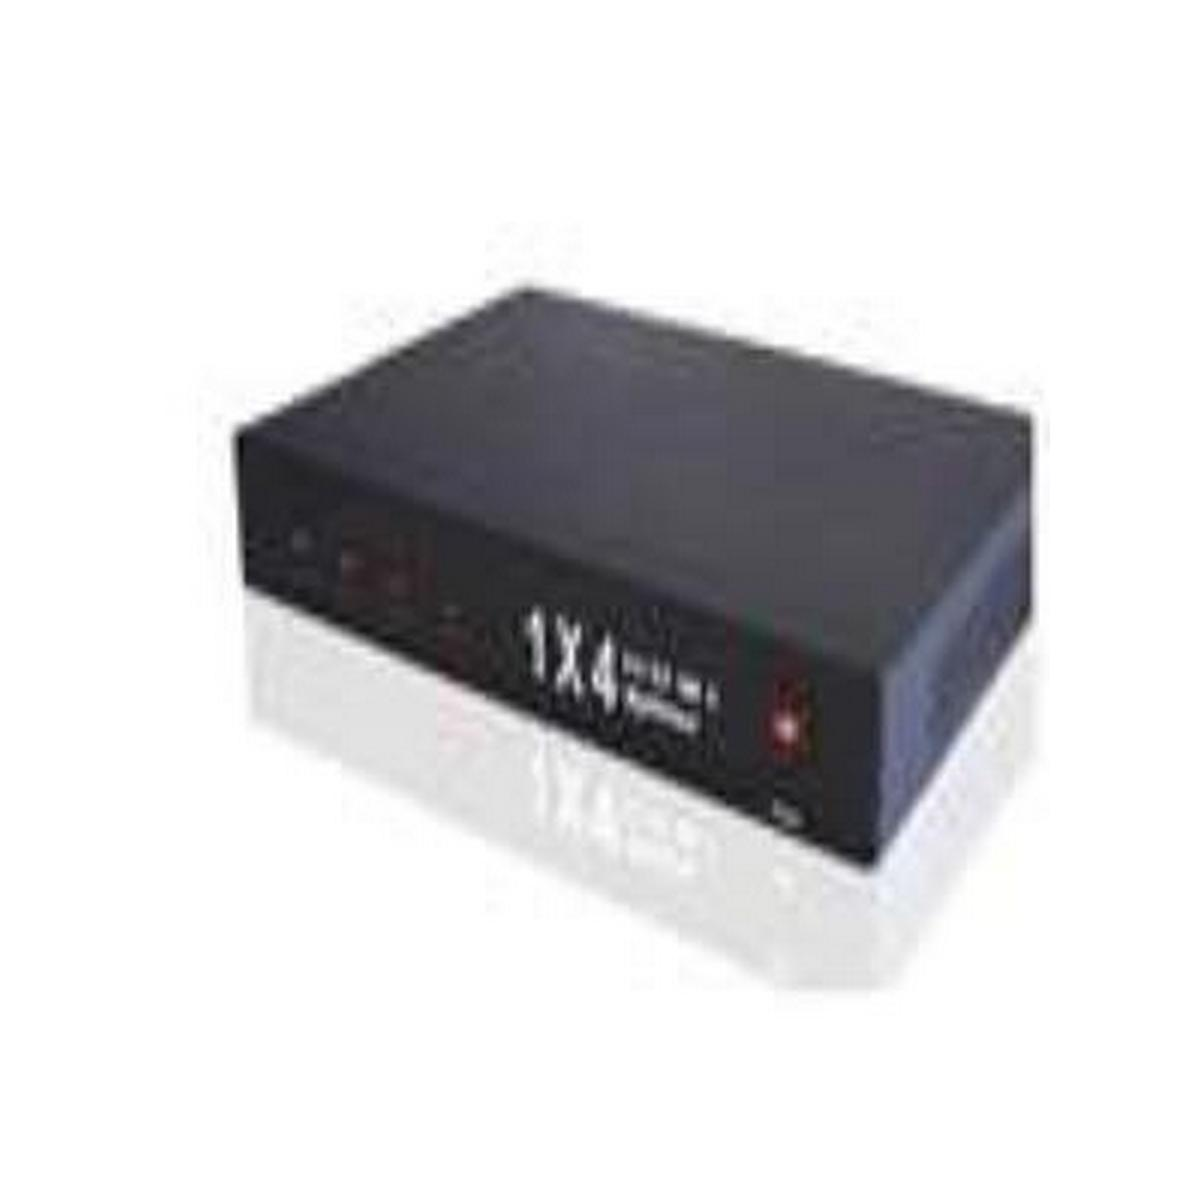 SR Components - HHSP4 - Hdmi Splitter 1 In 4 Out 1080p